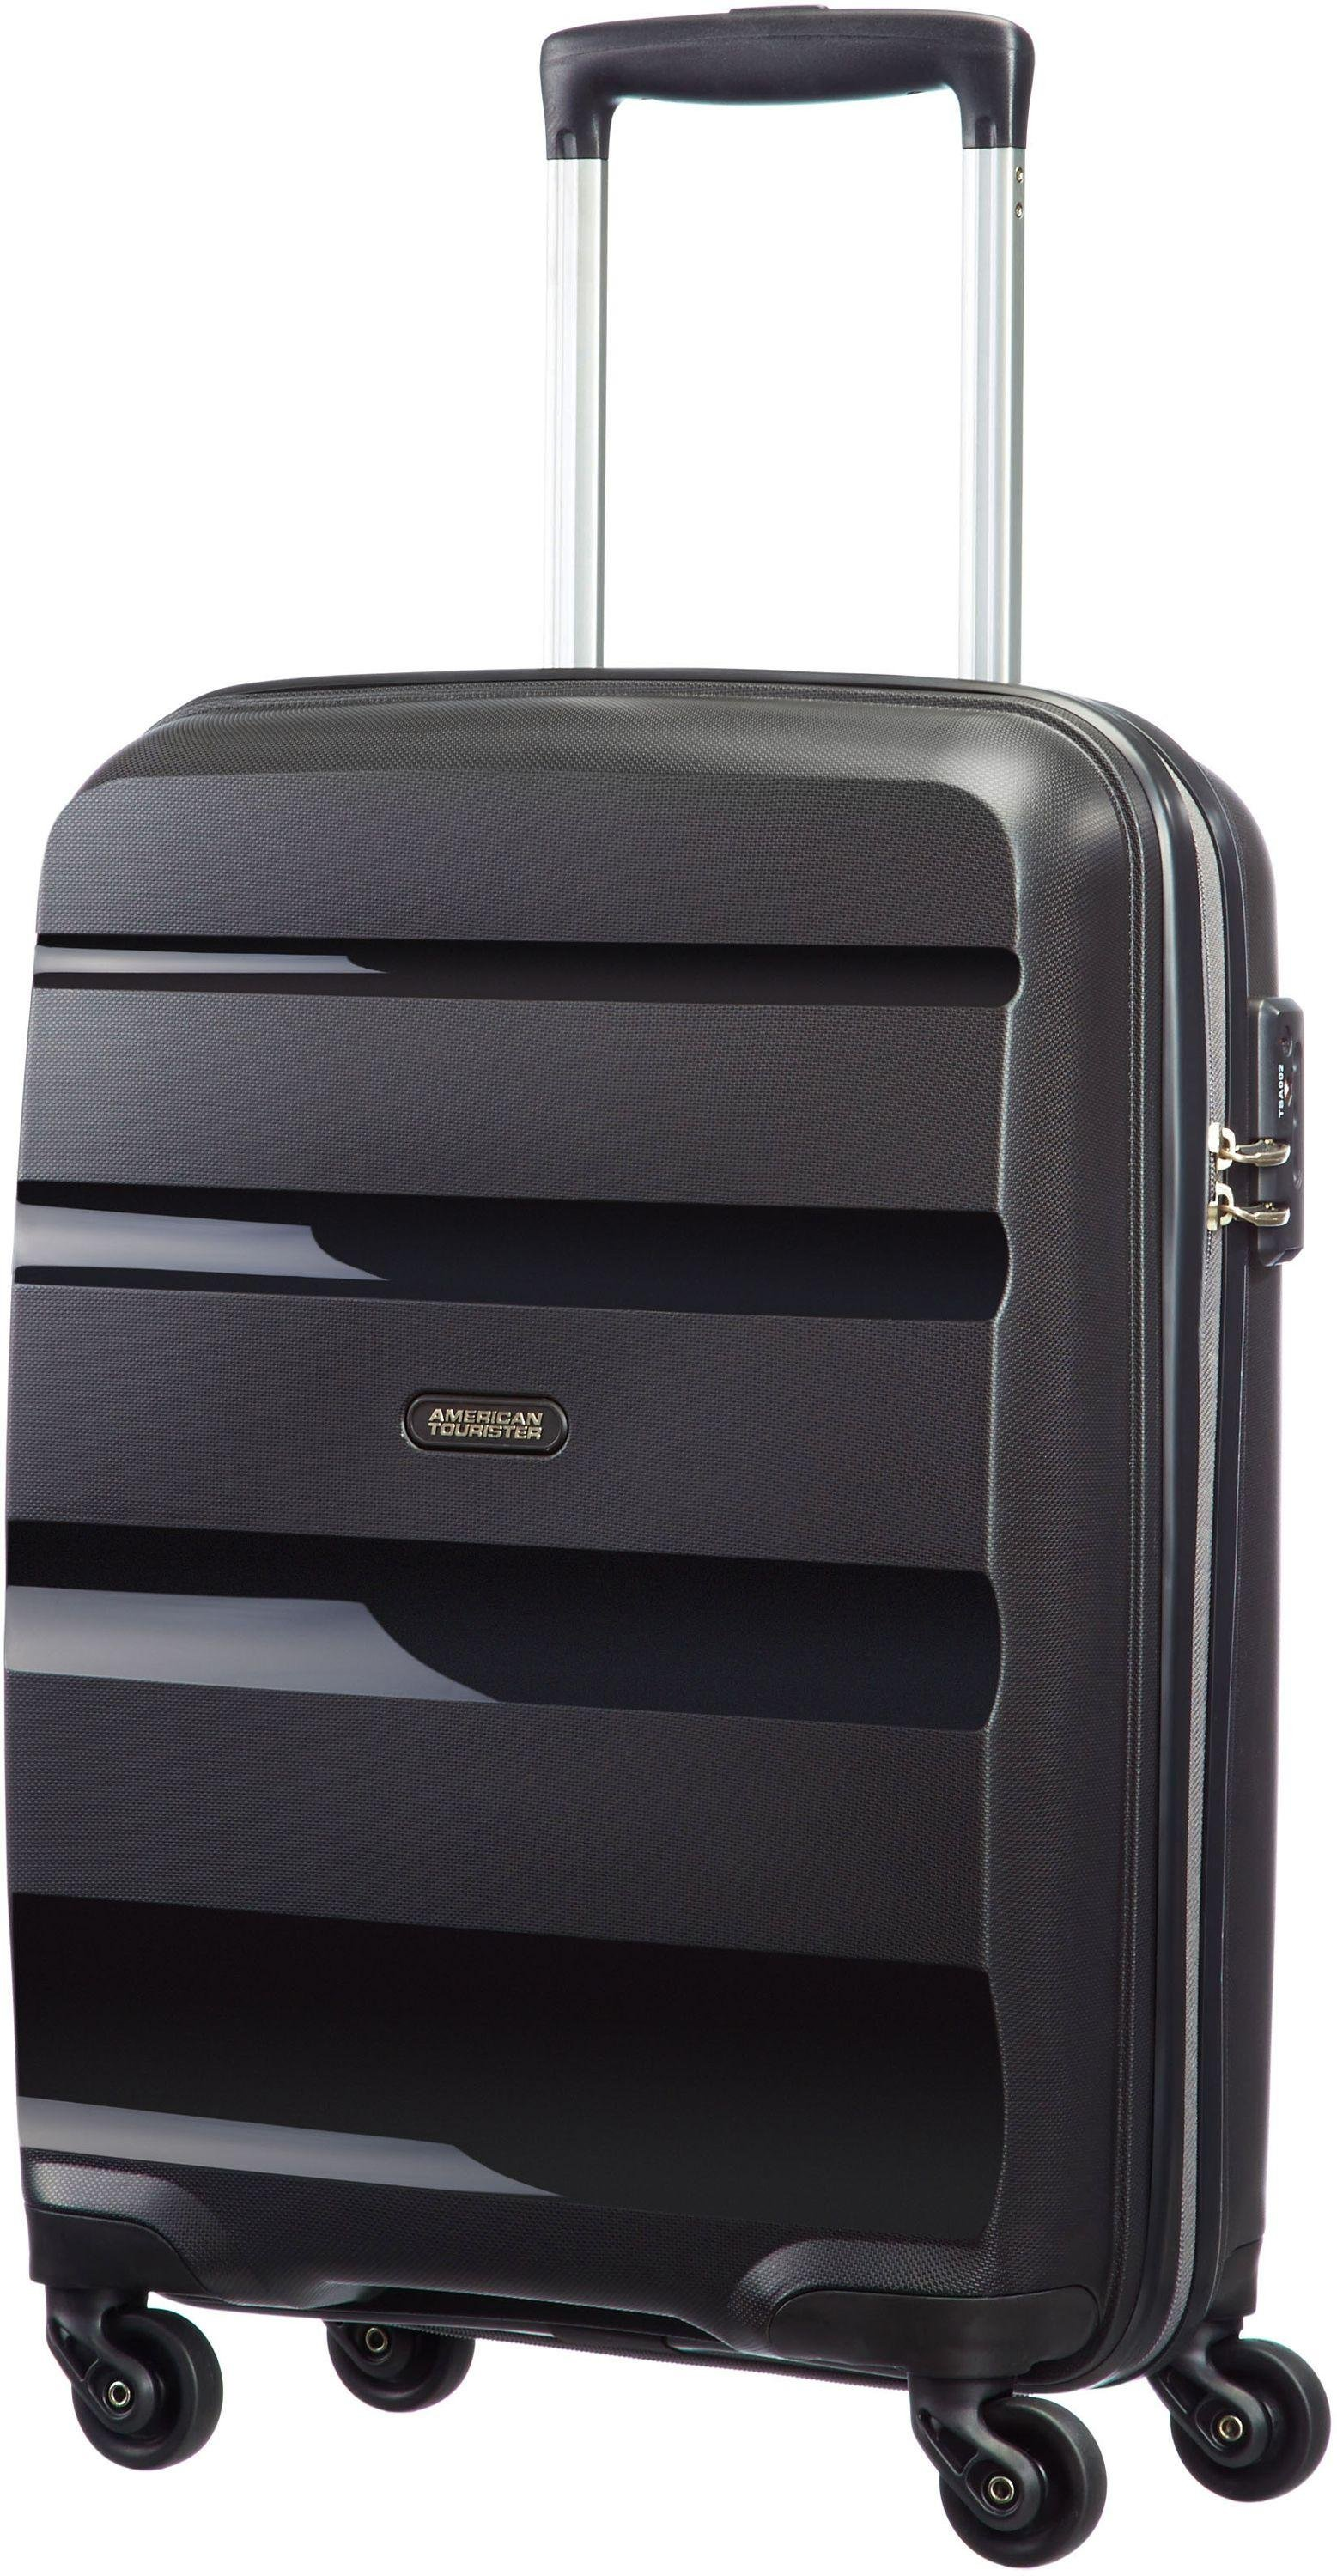 Image of American Tourister - Bon Air Spinner Small Suitcase - Black